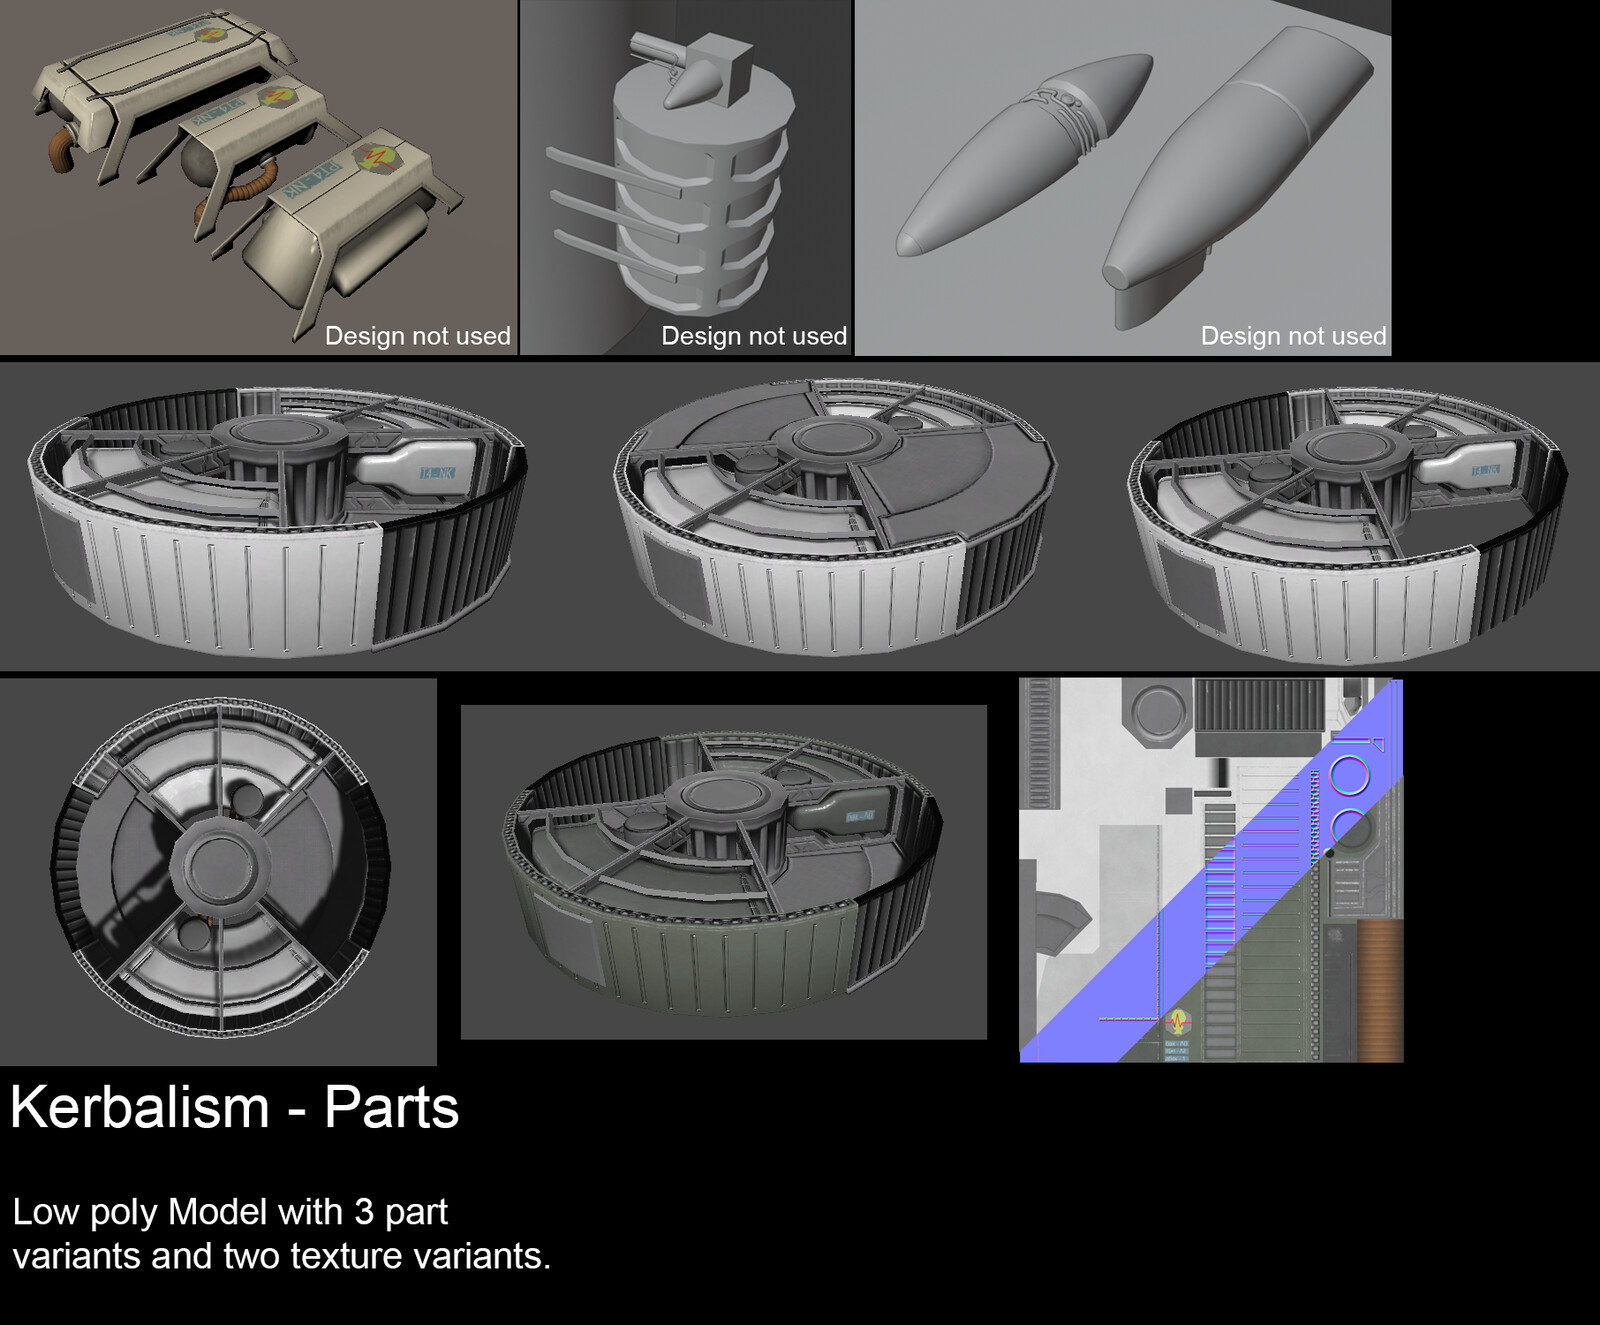 Kerbalism upgrade parts. Many more parts were disolved in the making of this tank.